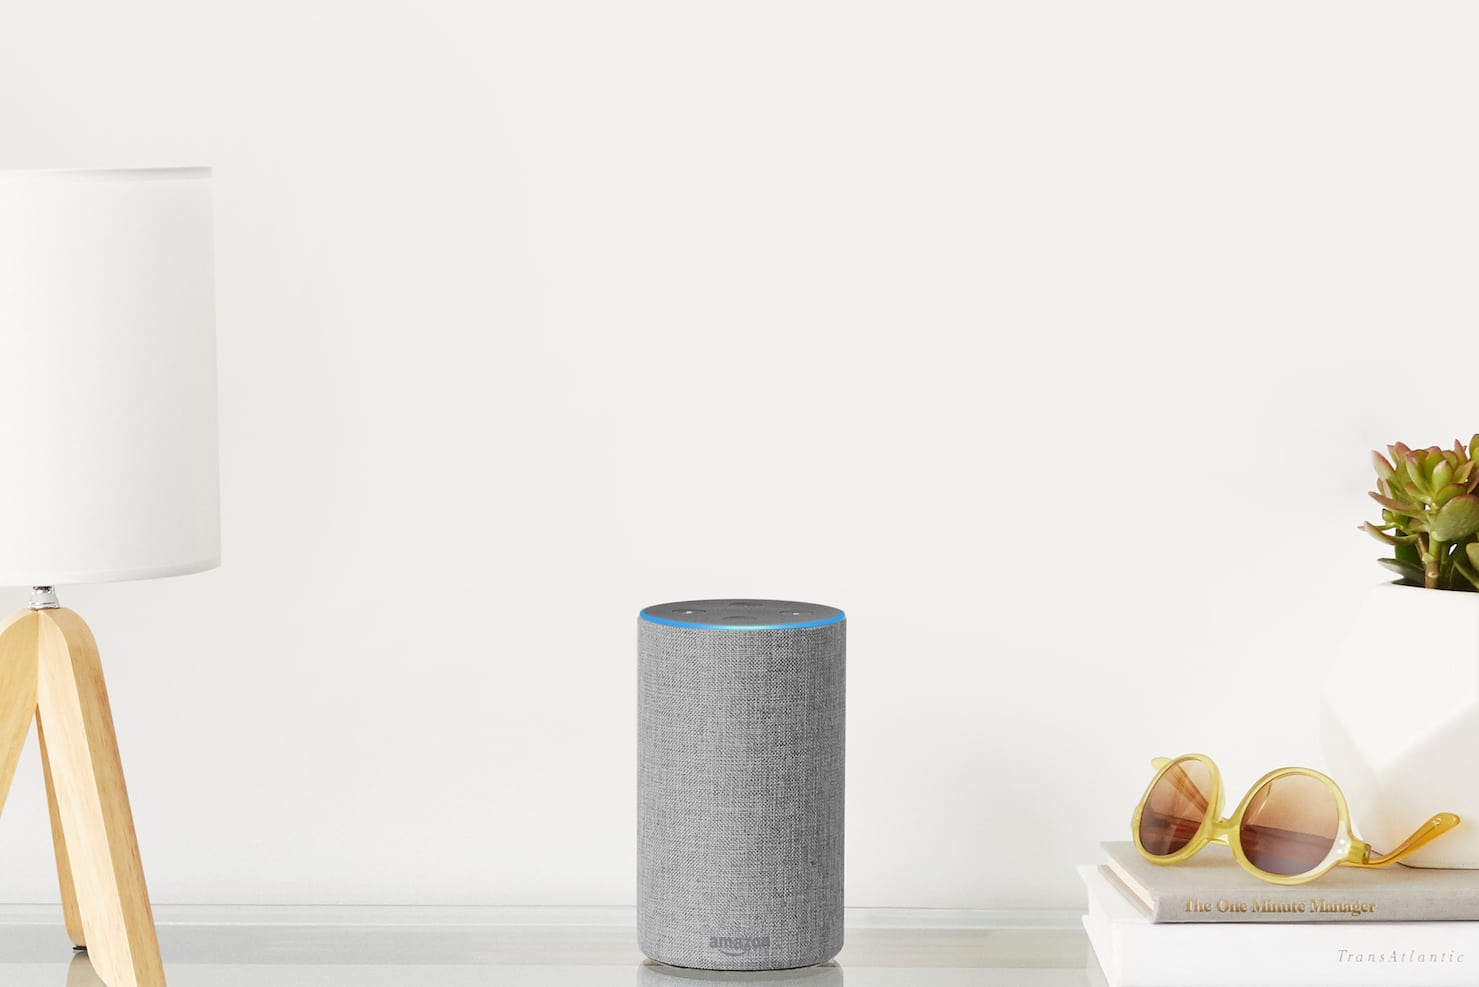 Amazon Echo (image: Amazon)